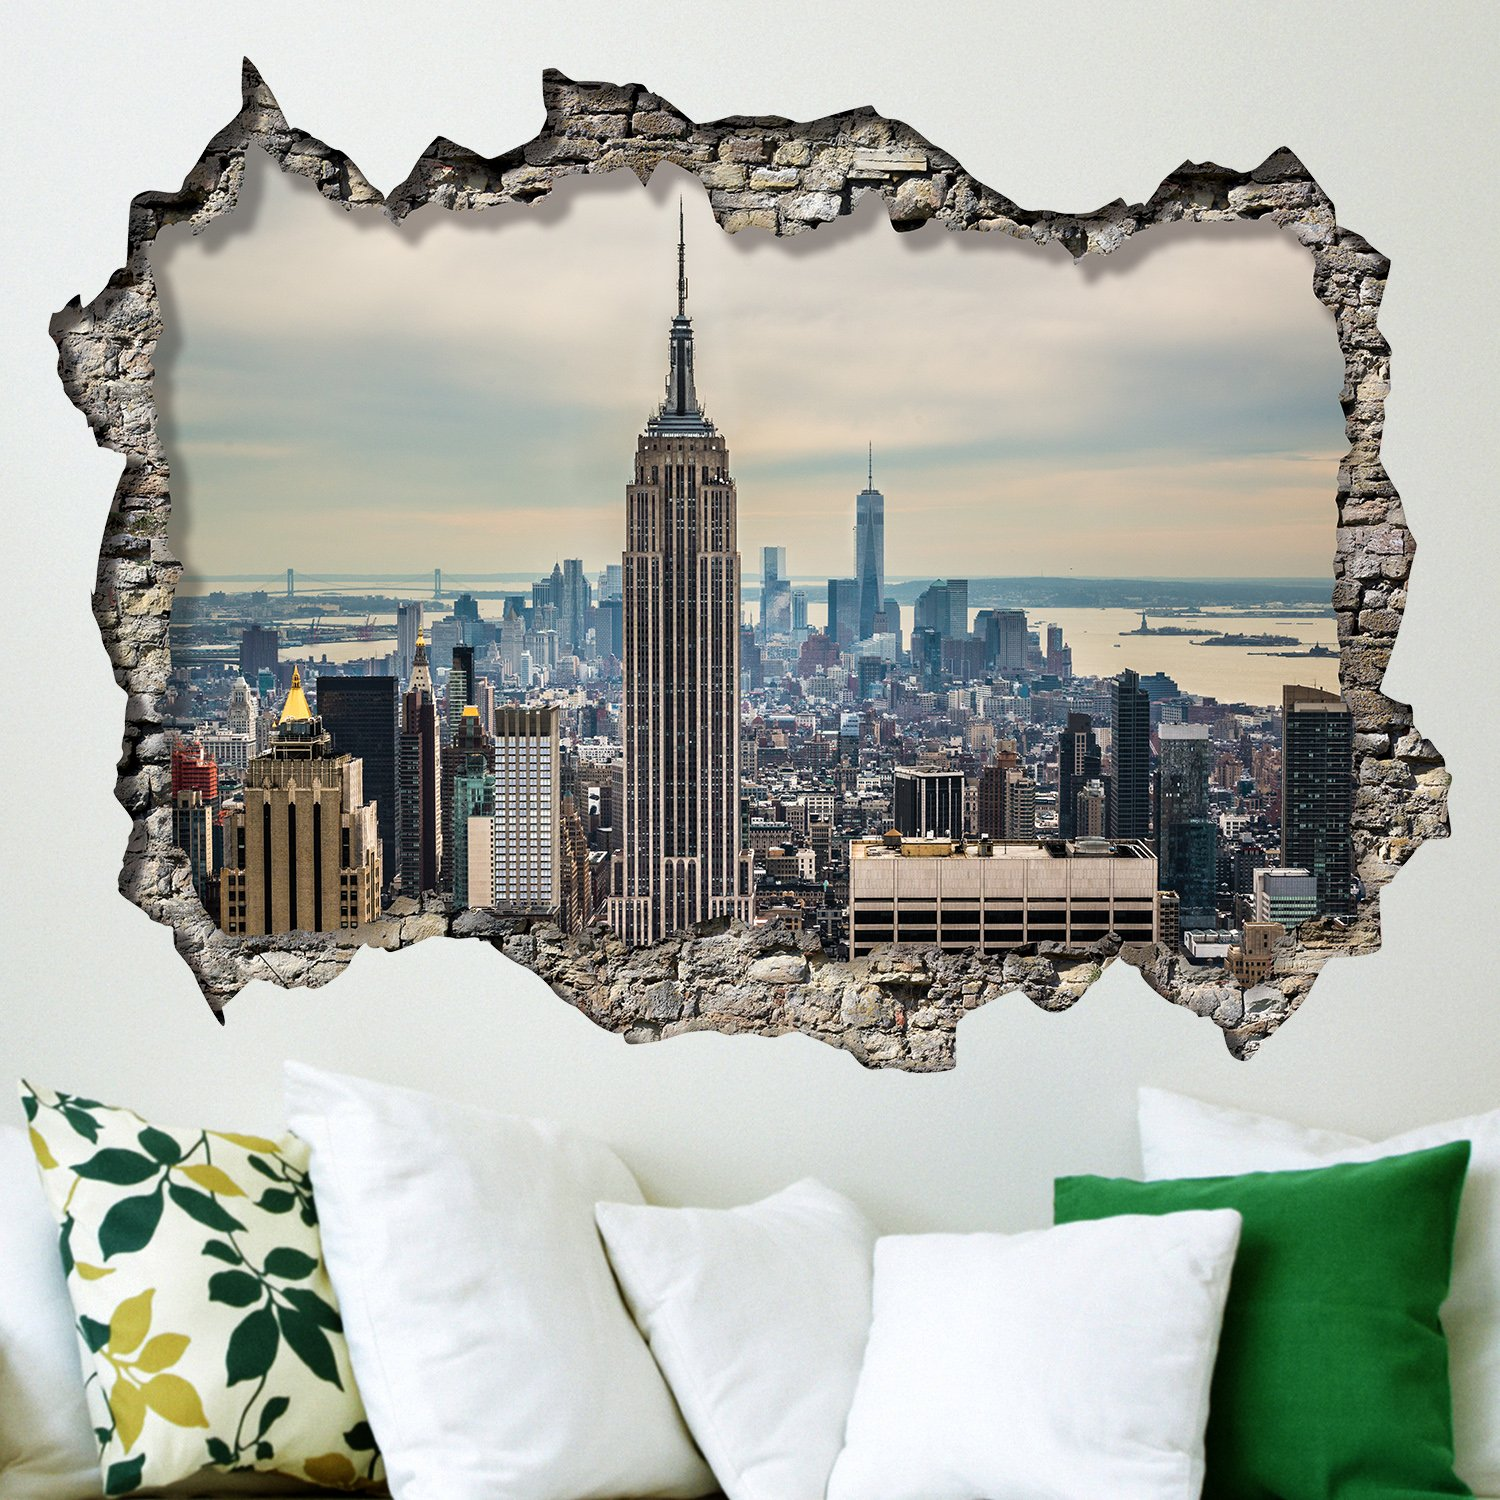 Walplus Wall Stickers New York Sunrise Mural Art Decals Vinyl Home  Decoration DIY Living Bedroom Office Décor Wallpaper Kids Room Gift,  Multi Colour: ... Part 43